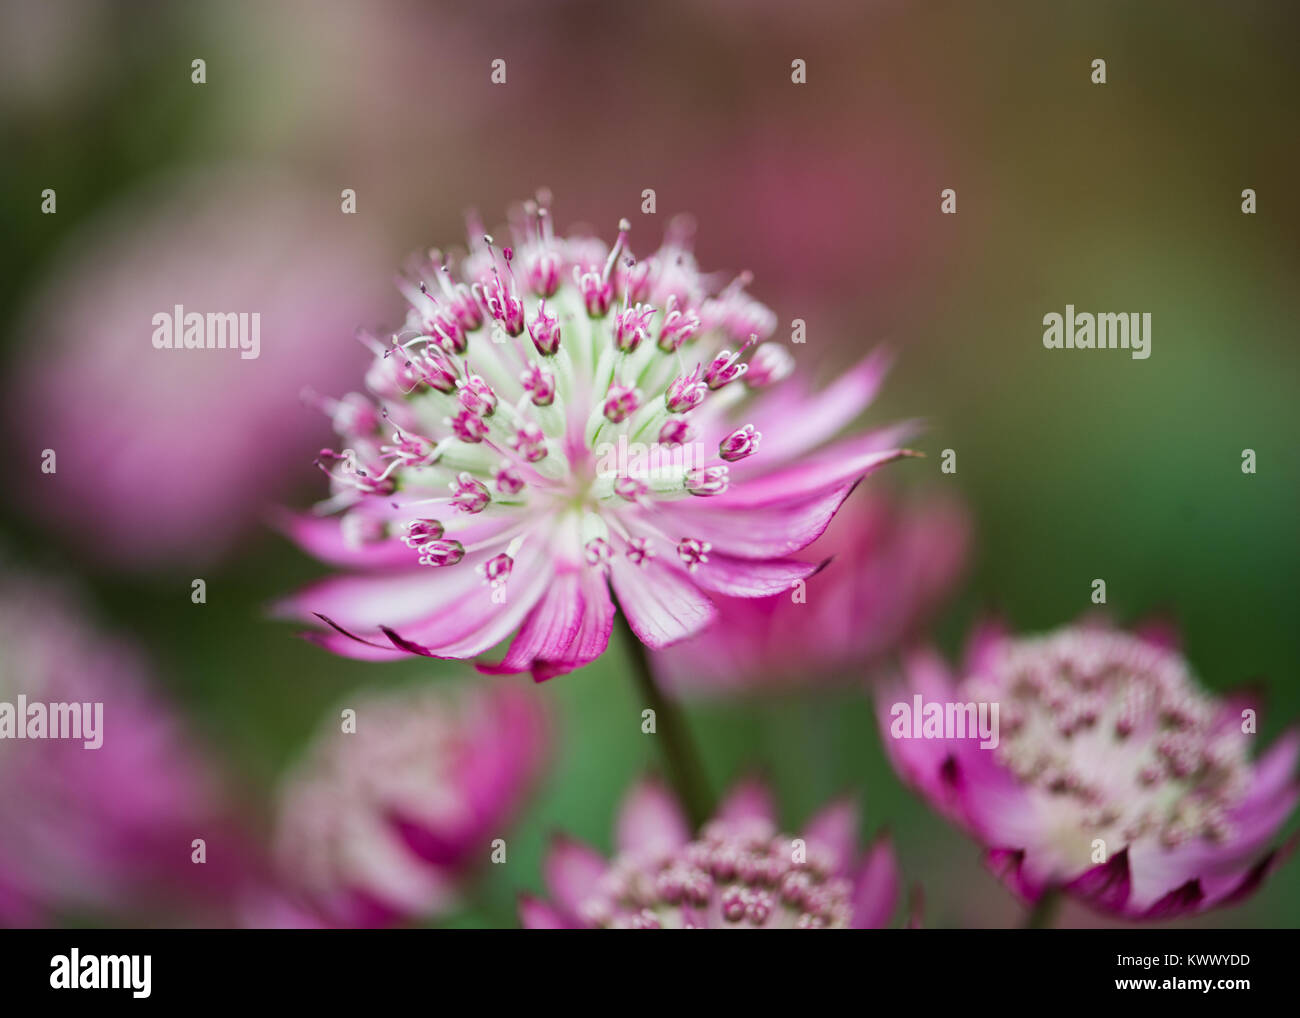 Astrantia Major Pink And White Flower And Petals On Green And Pink